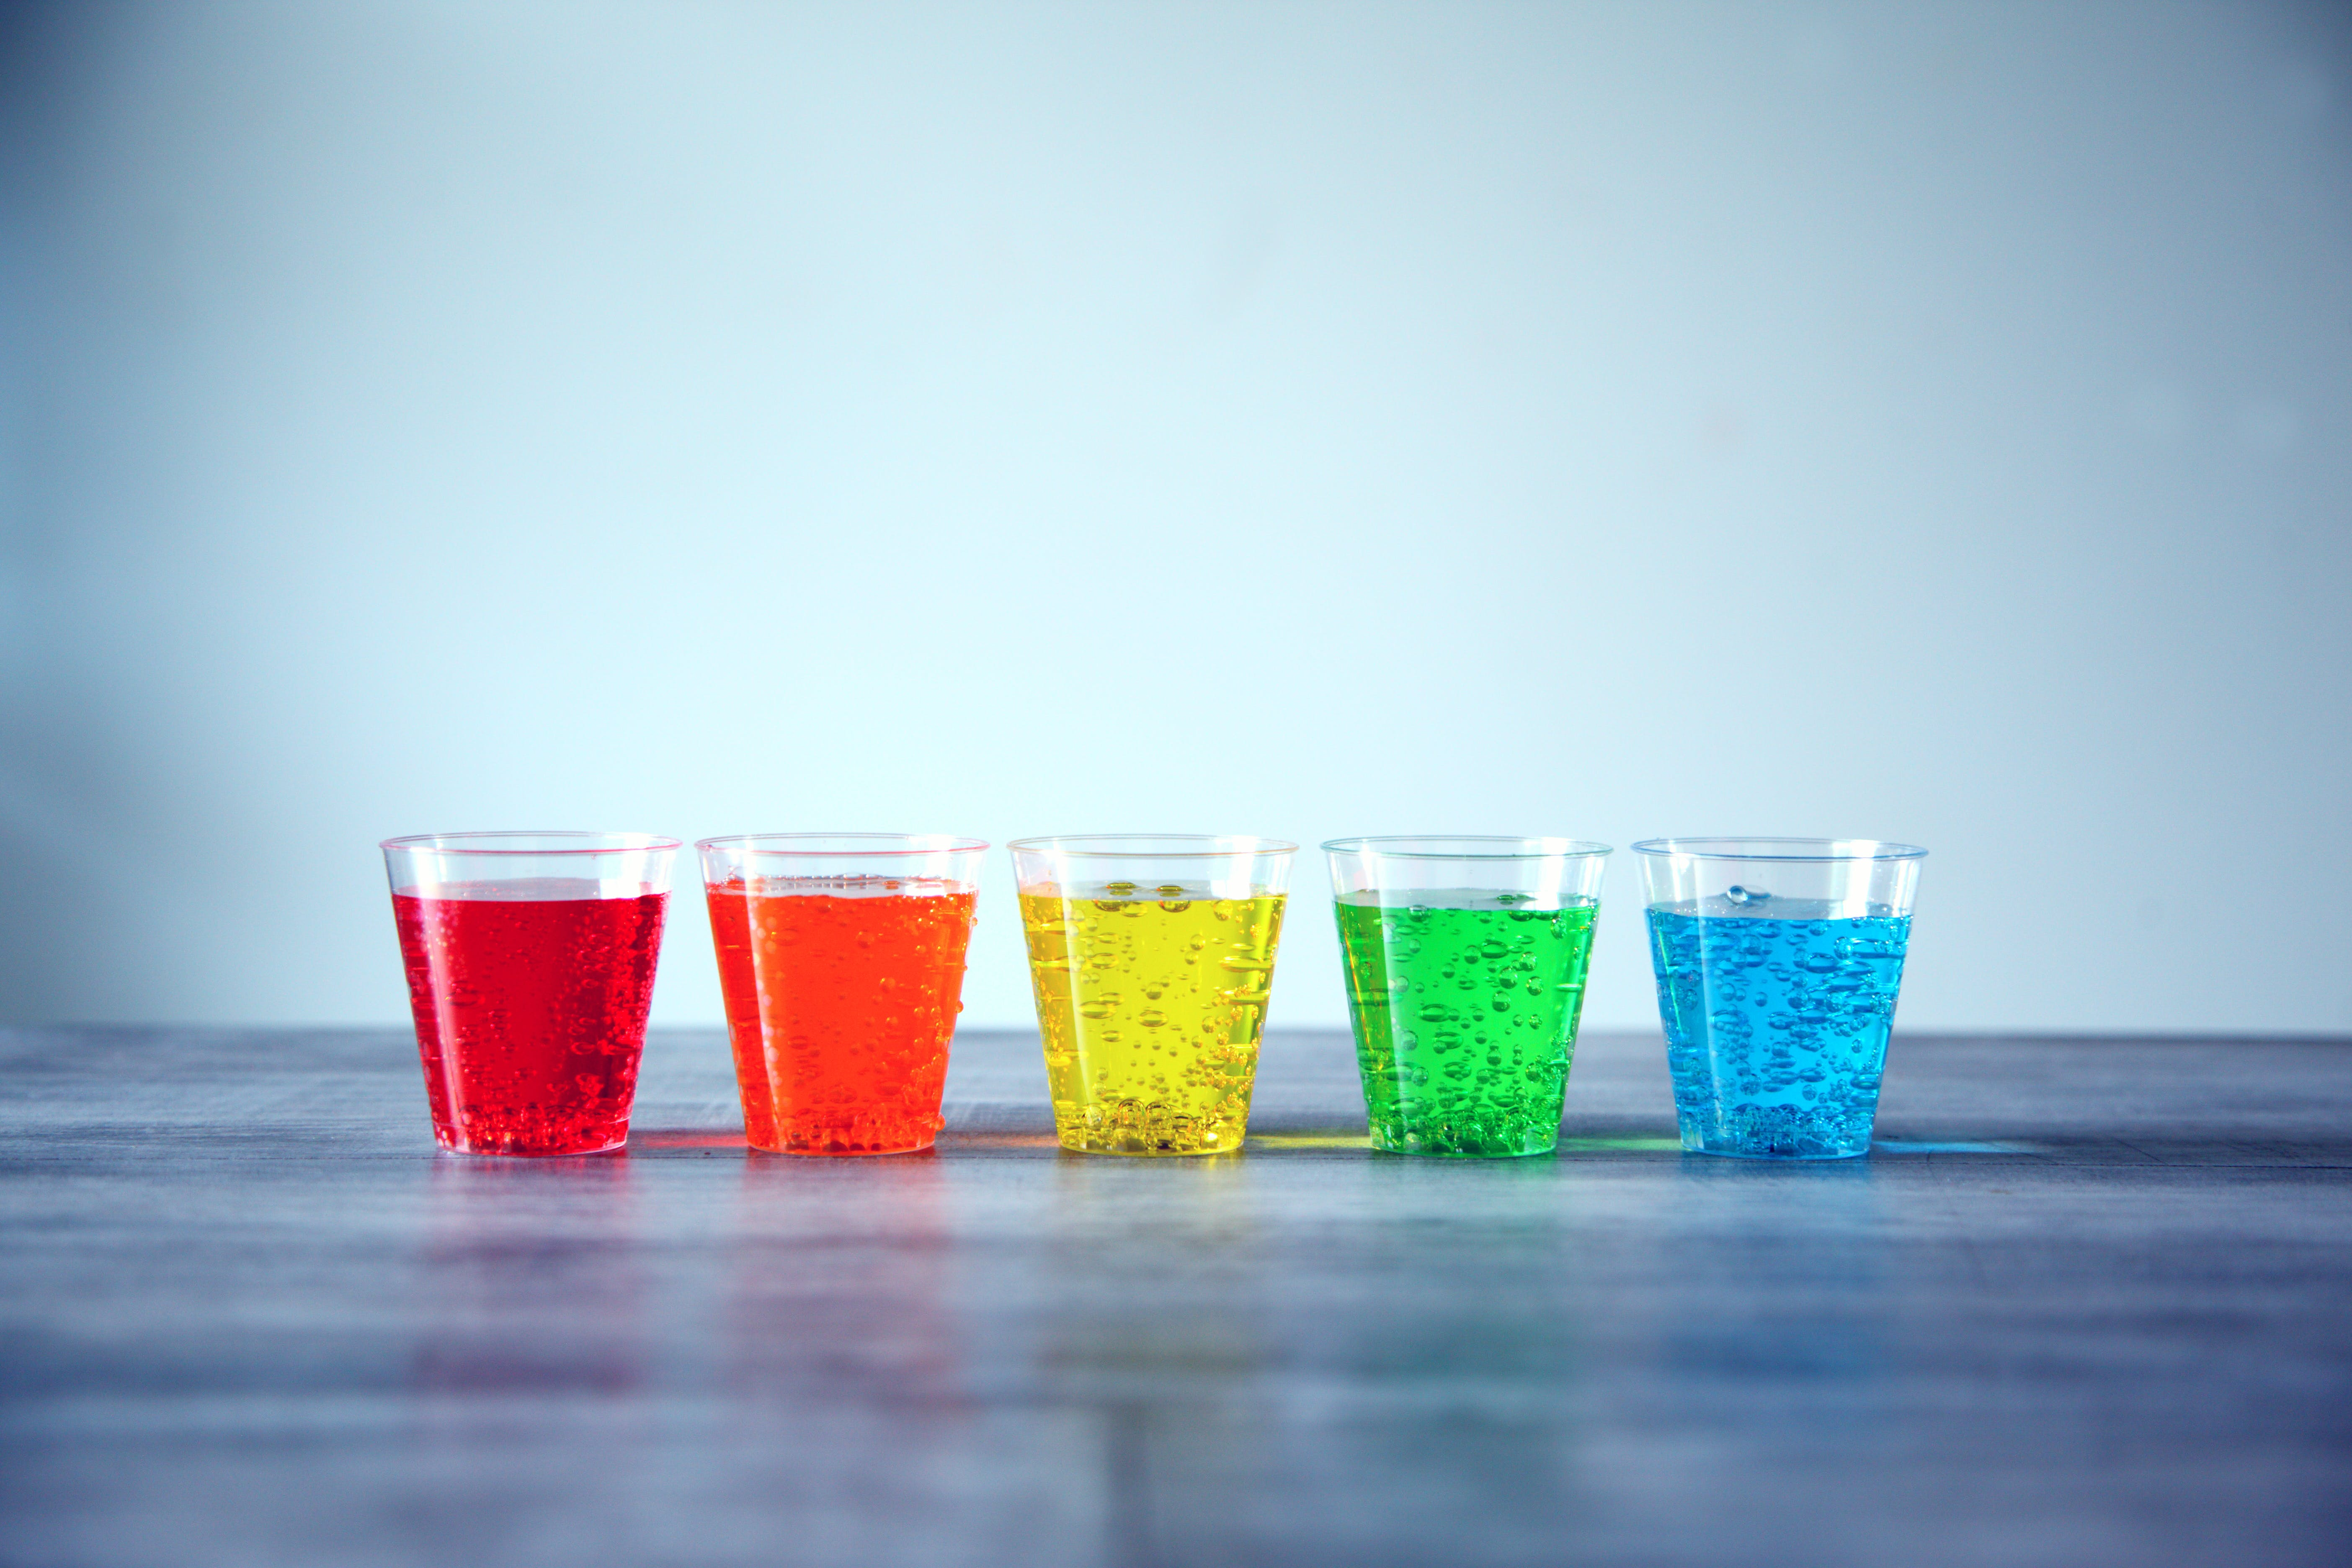 Five Assorted-color Rock's Glasses on Gray Surface